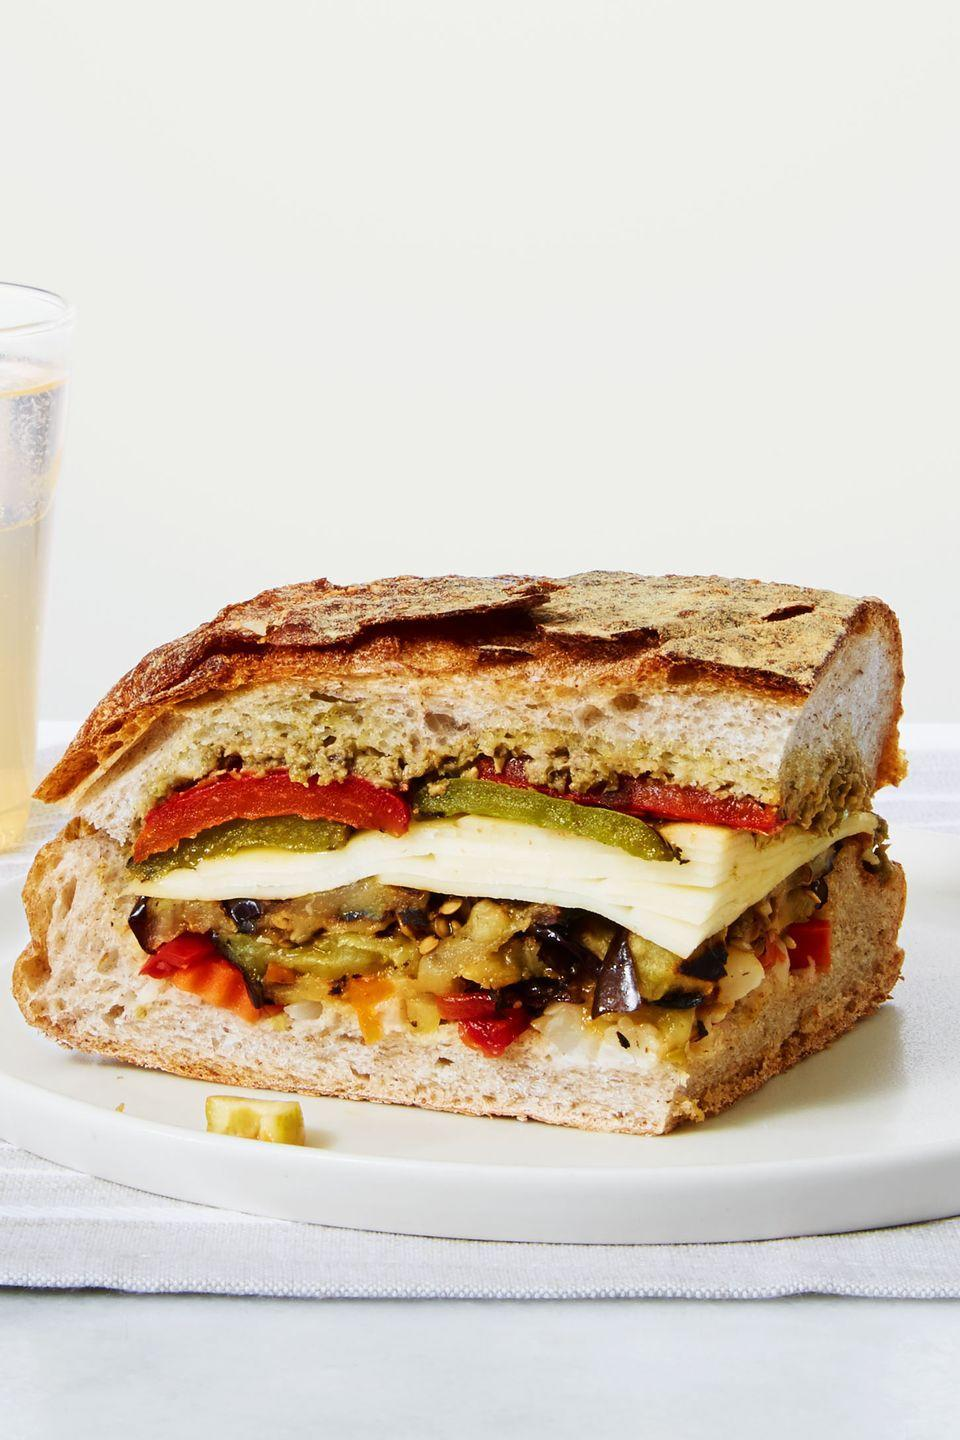 "<p>No matter which way you slice it, this giant New Orleans-style sandwich is stacked with layers of flavor.</p><p><a href=""https://www.goodhousekeeping.com/food-recipes/a39350/grilled-veggie-muffuletta-recipe/"" rel=""nofollow noopener"" target=""_blank"" data-ylk=""slk:Get the recipe for Grilled Veggie Muffuletta »"" class=""link rapid-noclick-resp""><em>Get the recipe for Grilled Veggie Muffuletta »</em></a> </p>"